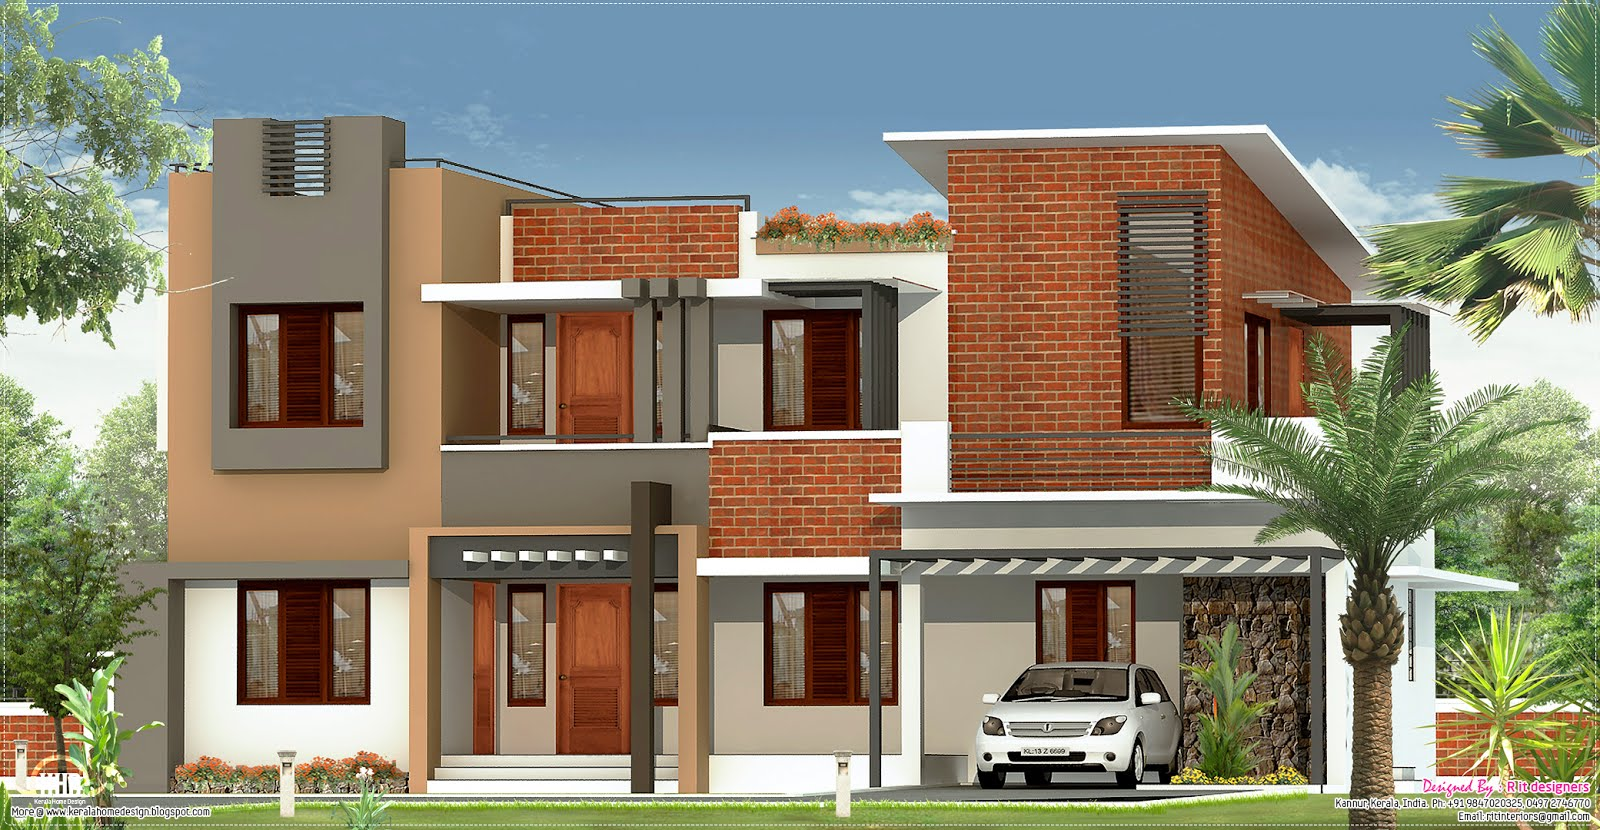 Related to 4 bedroom modern flat roof house kerala home design and